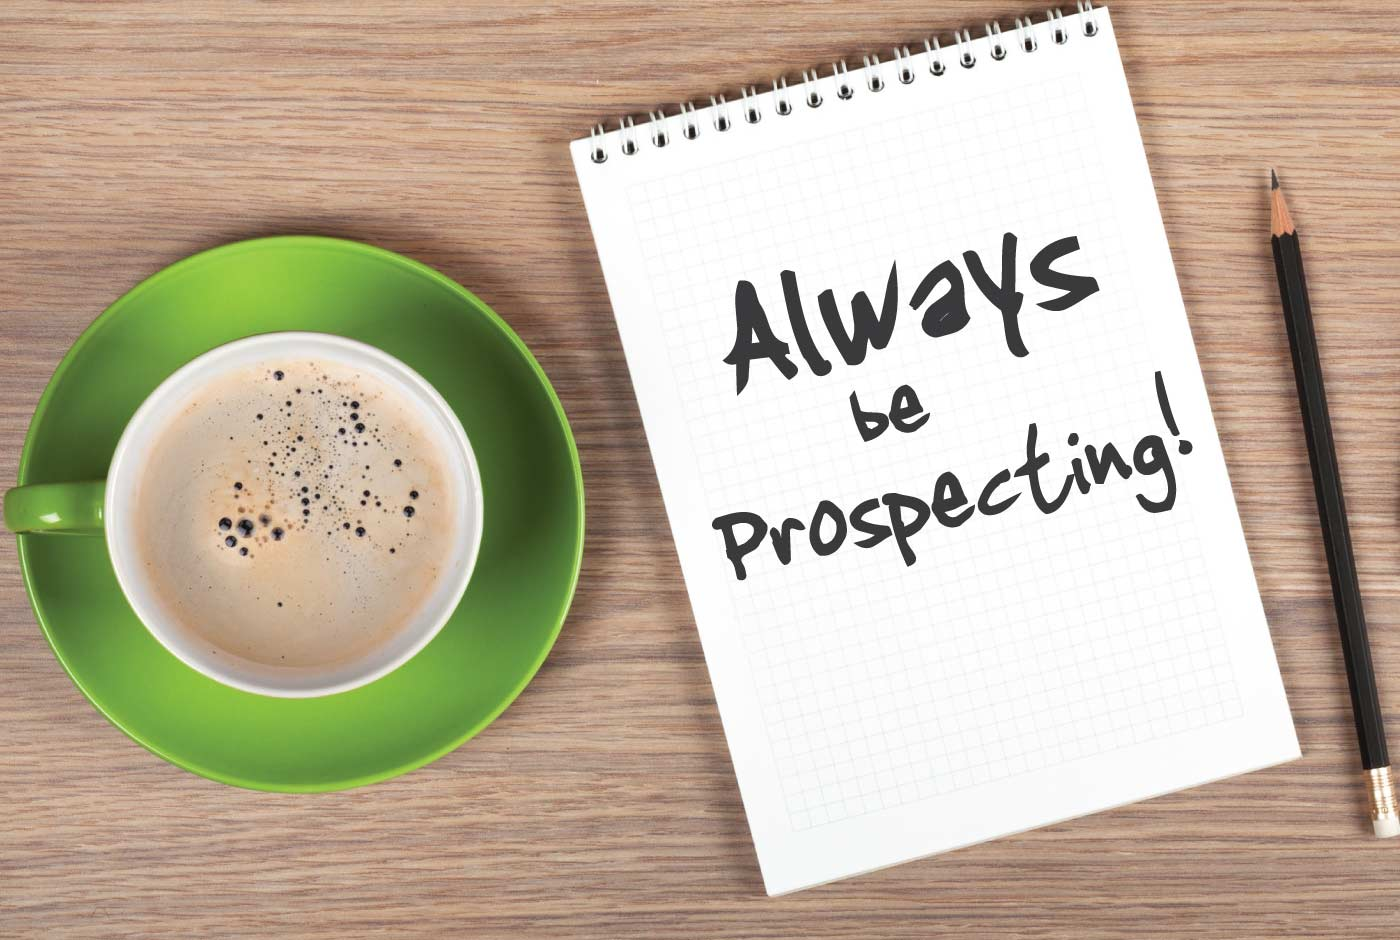 Always-be-prospecting-7-Minute-Sales-Minute-Podcast